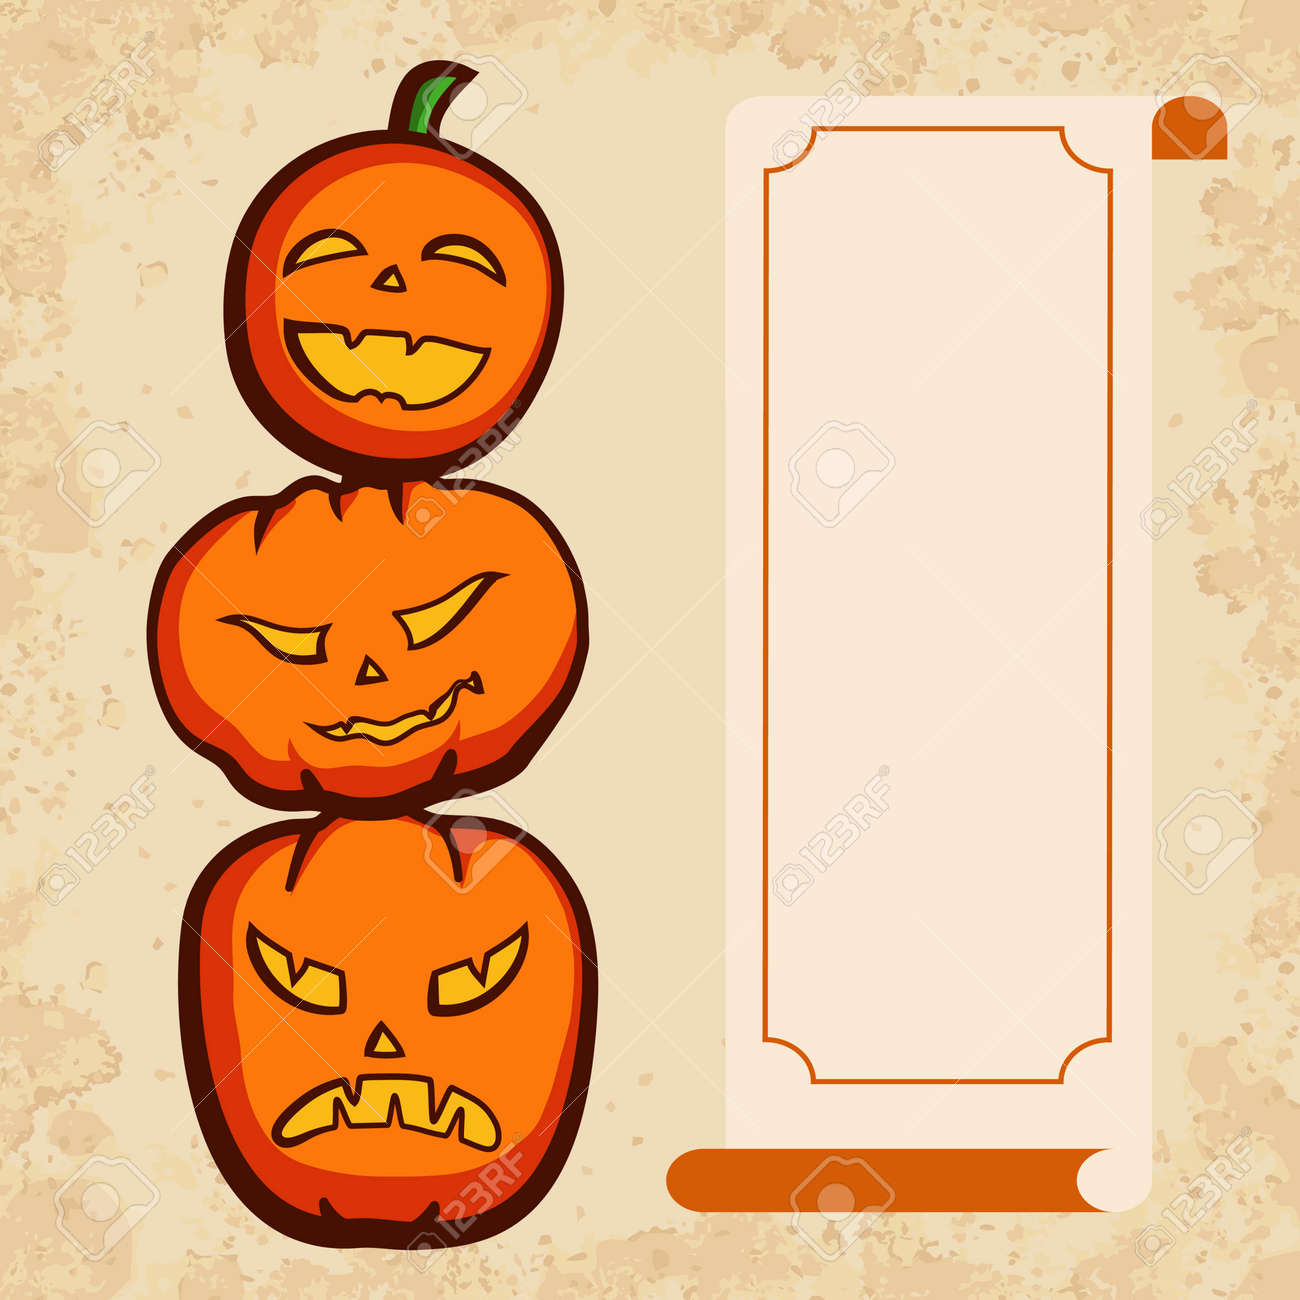 Halloween Party Invitation With Funny Pumpkins Royalty Free Cliparts ...